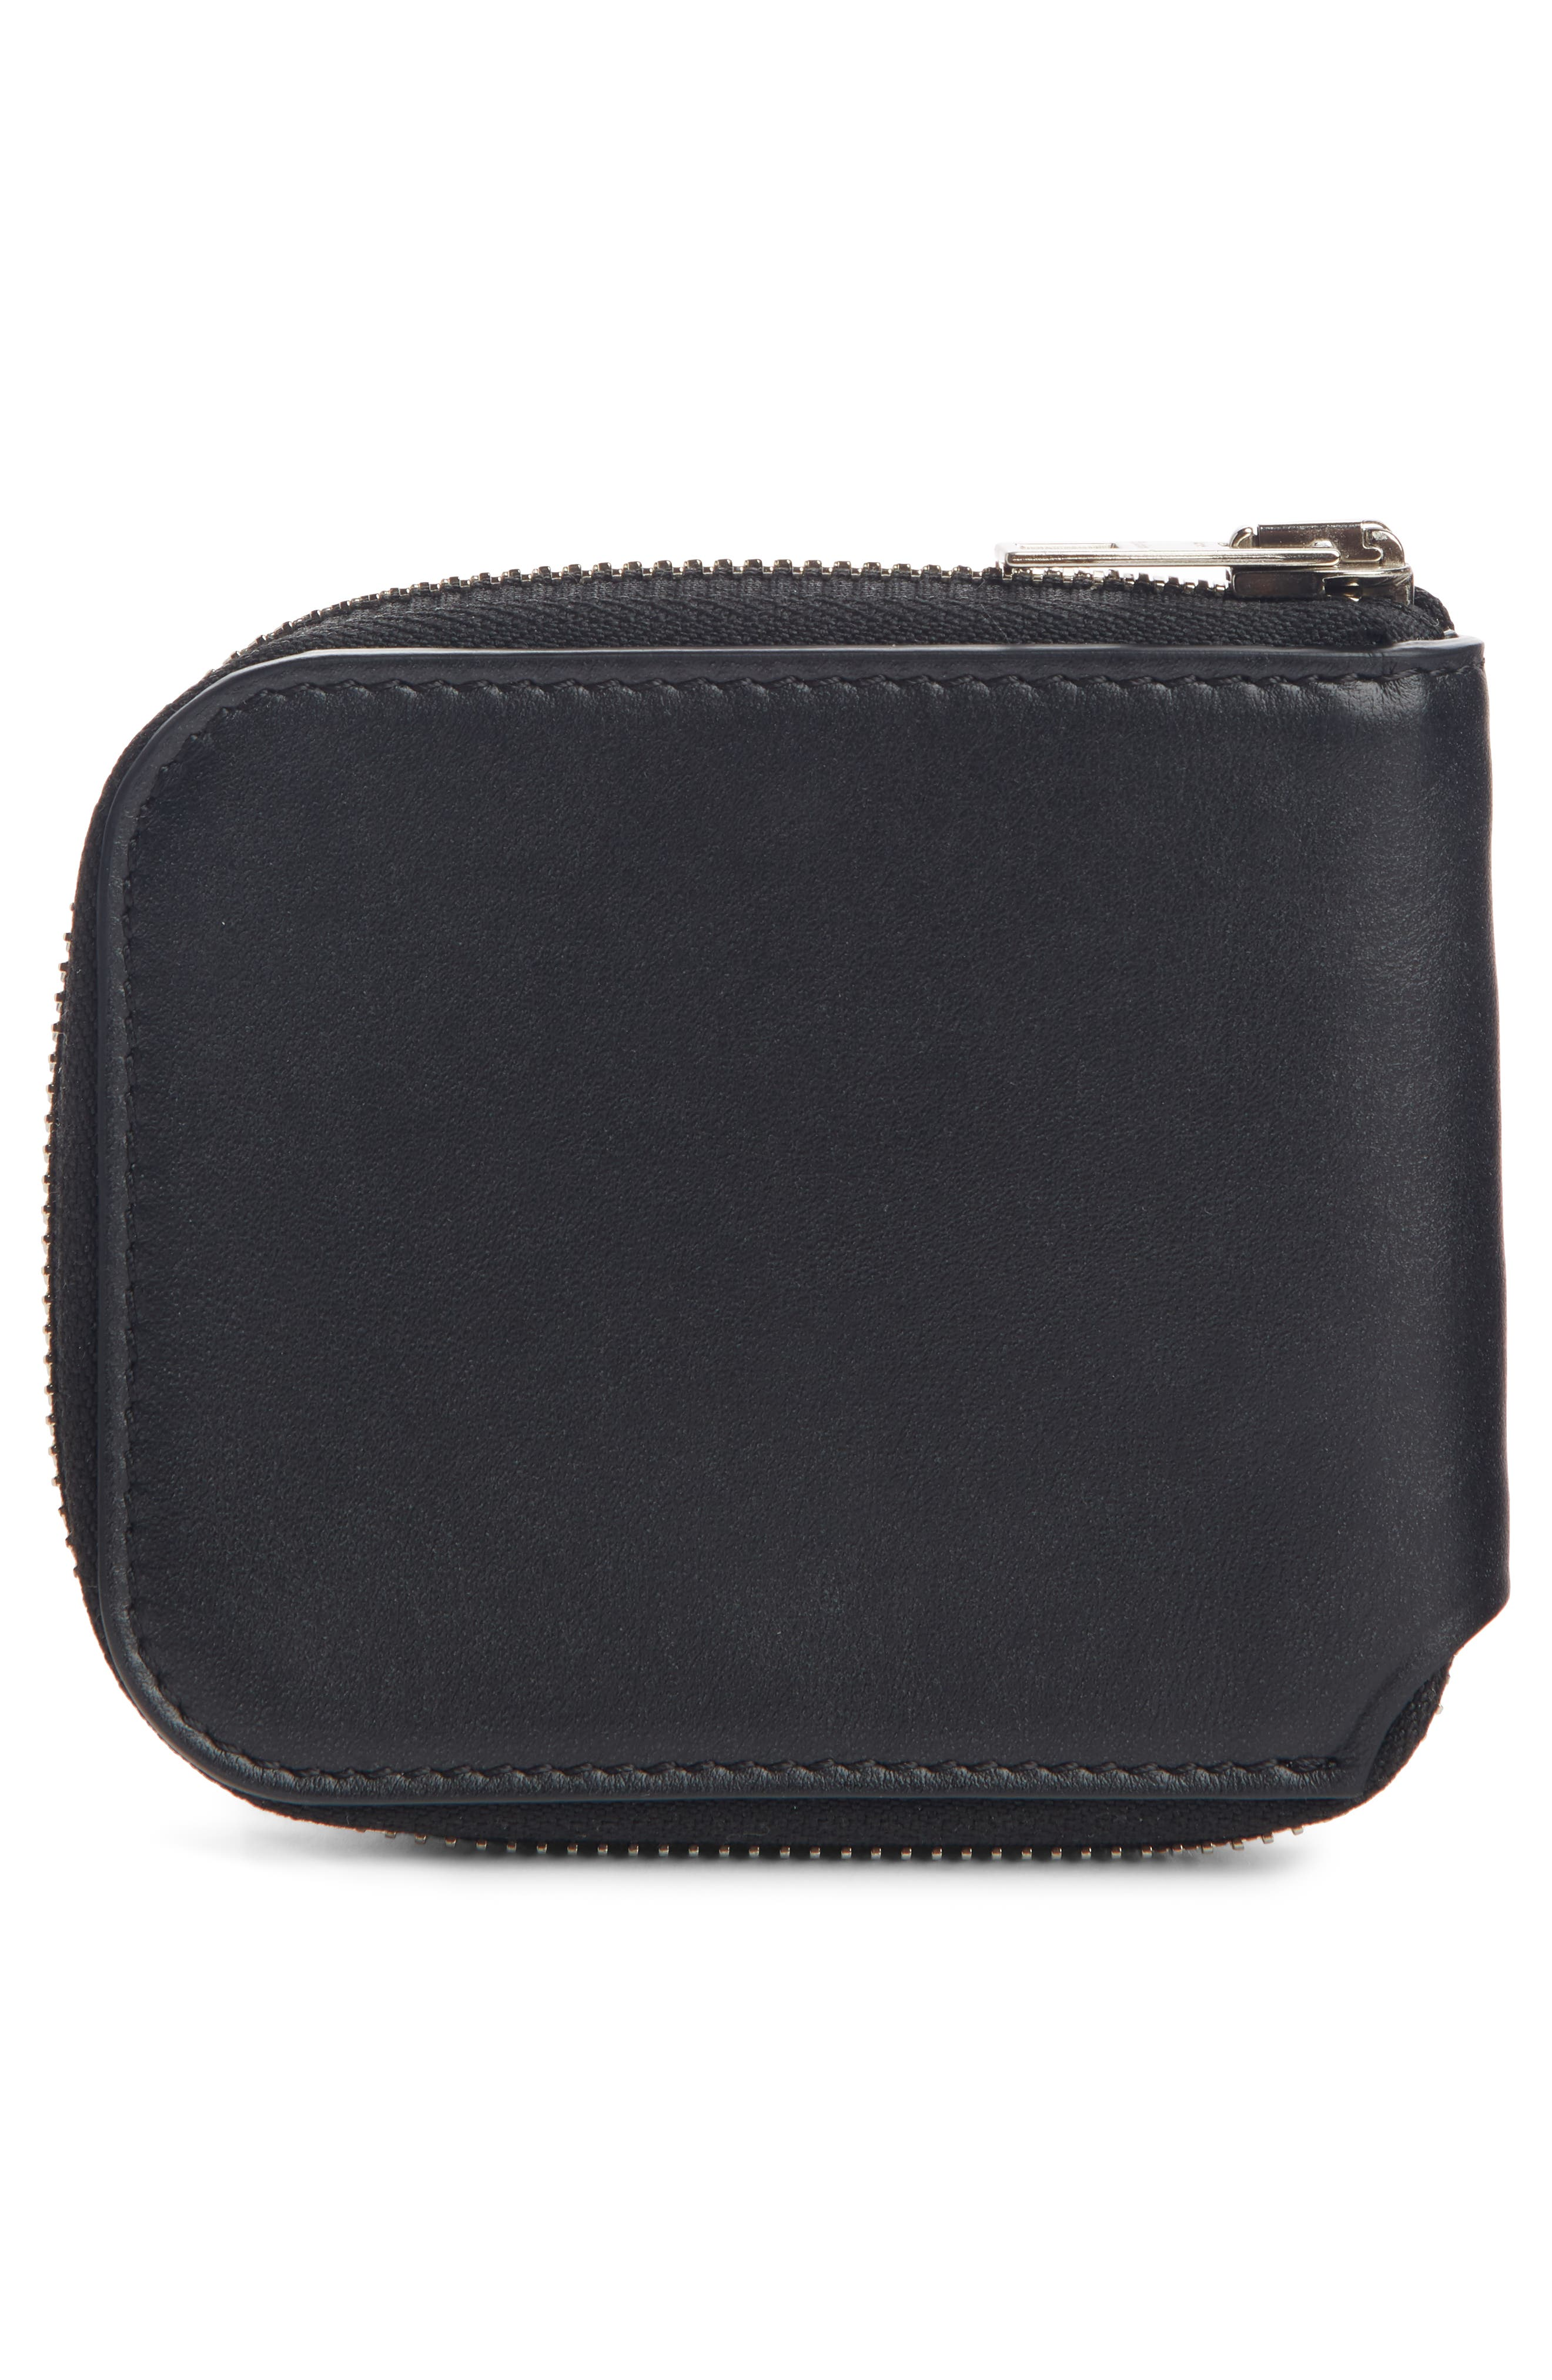 Kei S Zip Around Leather Wallet,                             Alternate thumbnail 2, color,                             BLACK